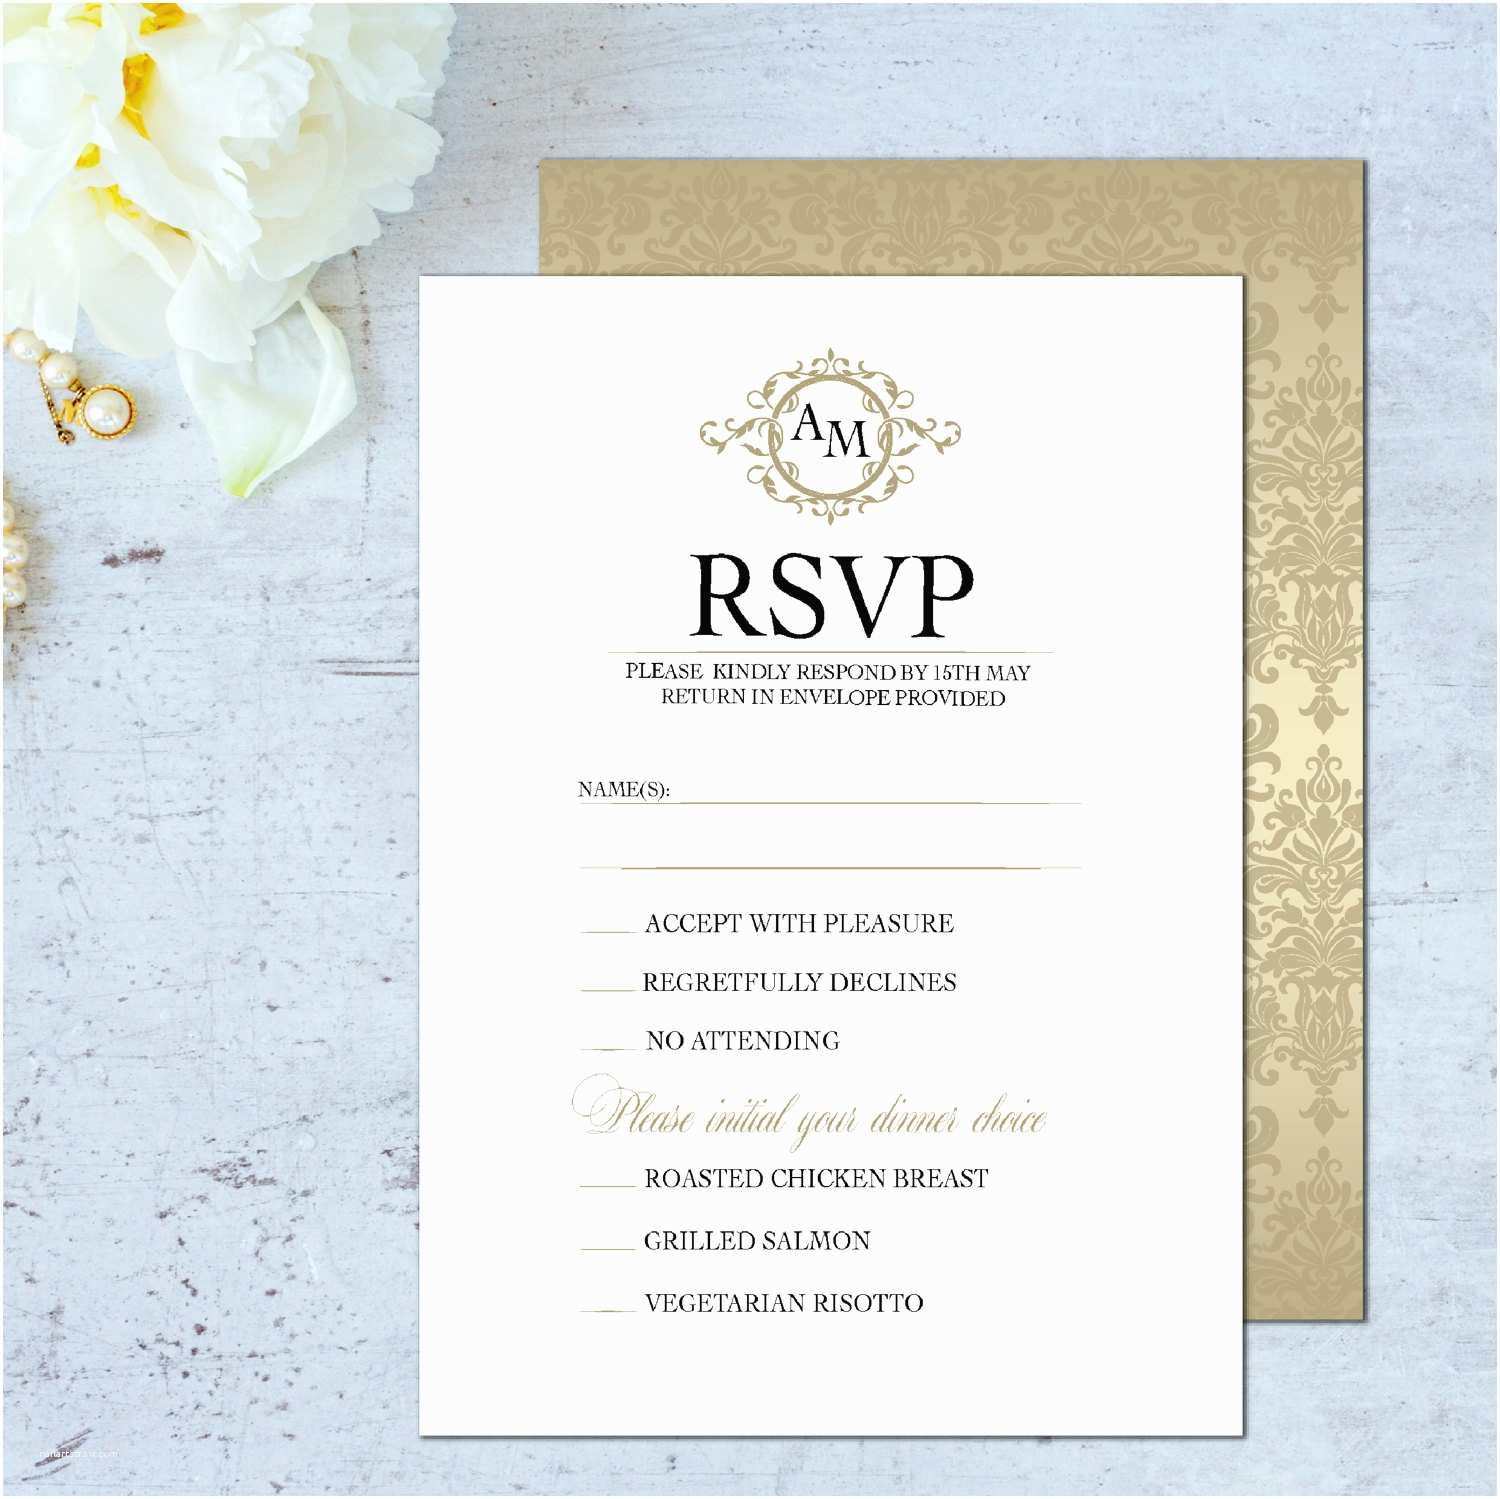 Wedding Invitations With Rsvp And Reception Cards Ideas Wedding Reception Response Card